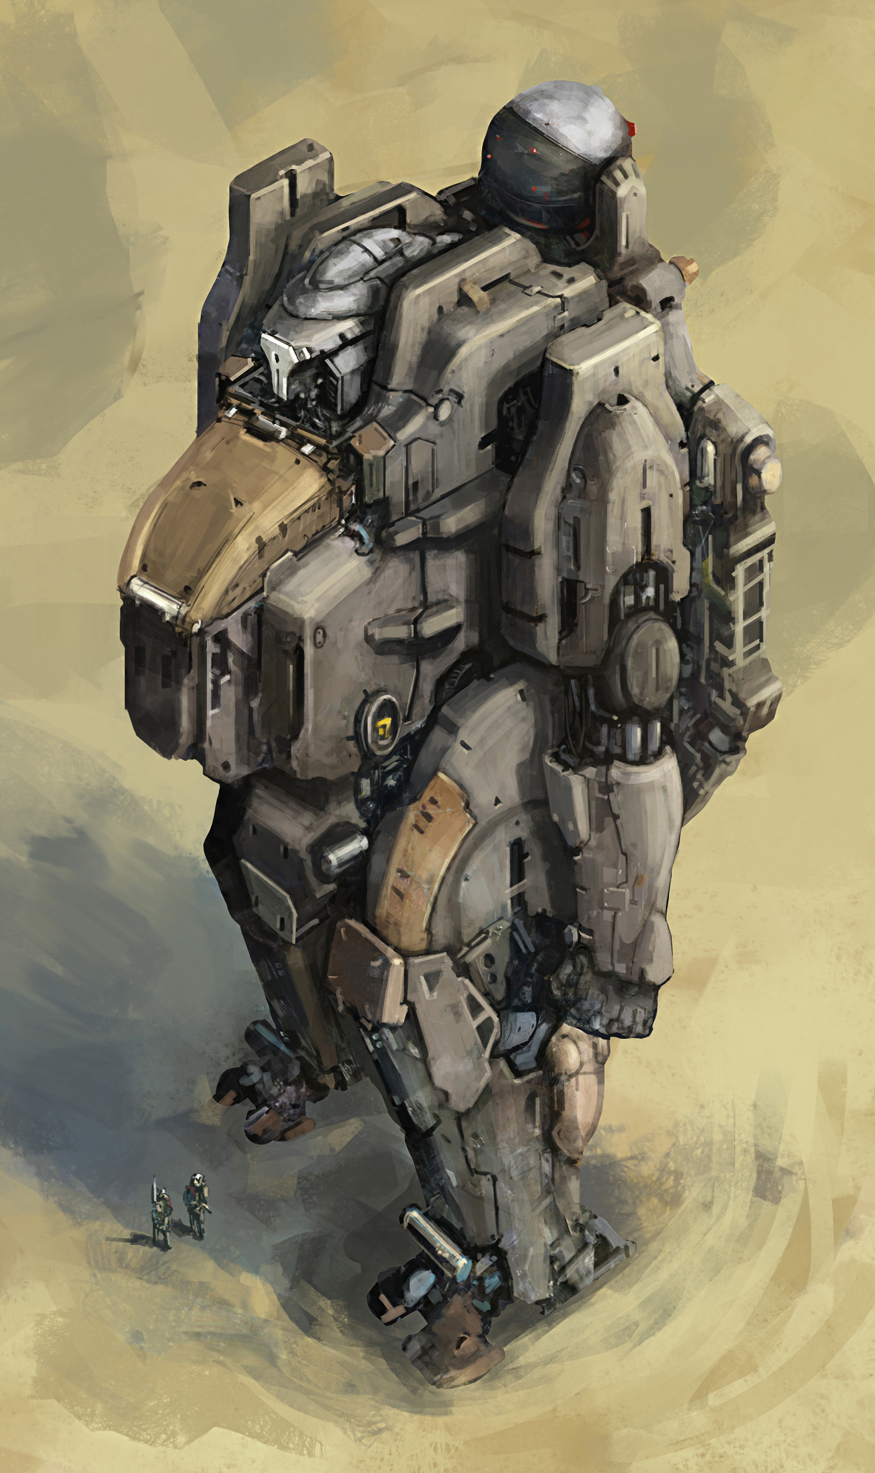 Mech Suit 2 by cjuzzz